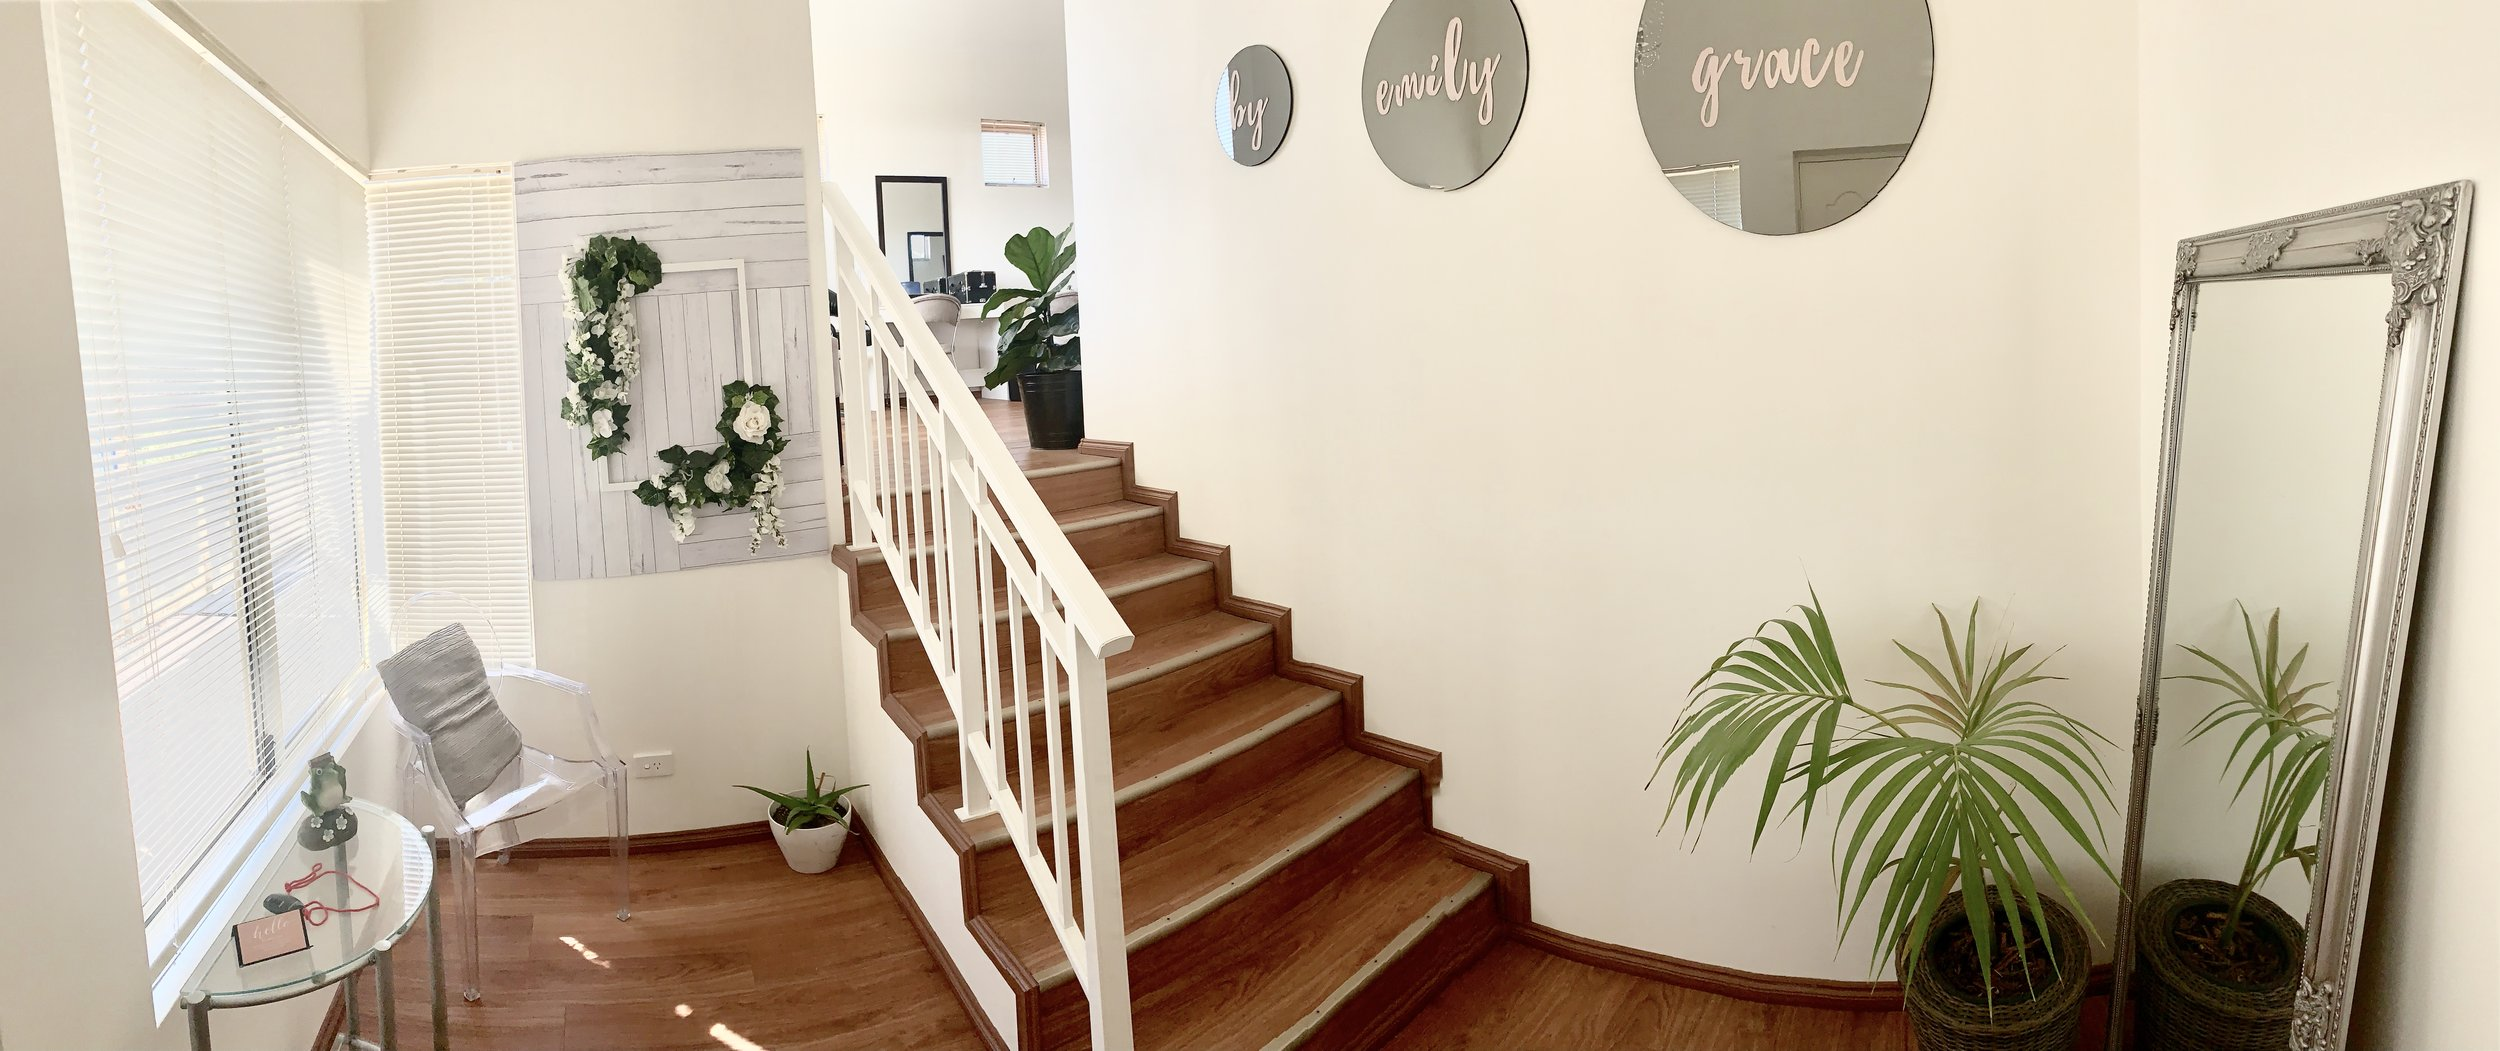 The front entrance of our studio, seen once you've entered through the front door. You then proceed up the stairs seen in the above image to the main room of our studio.